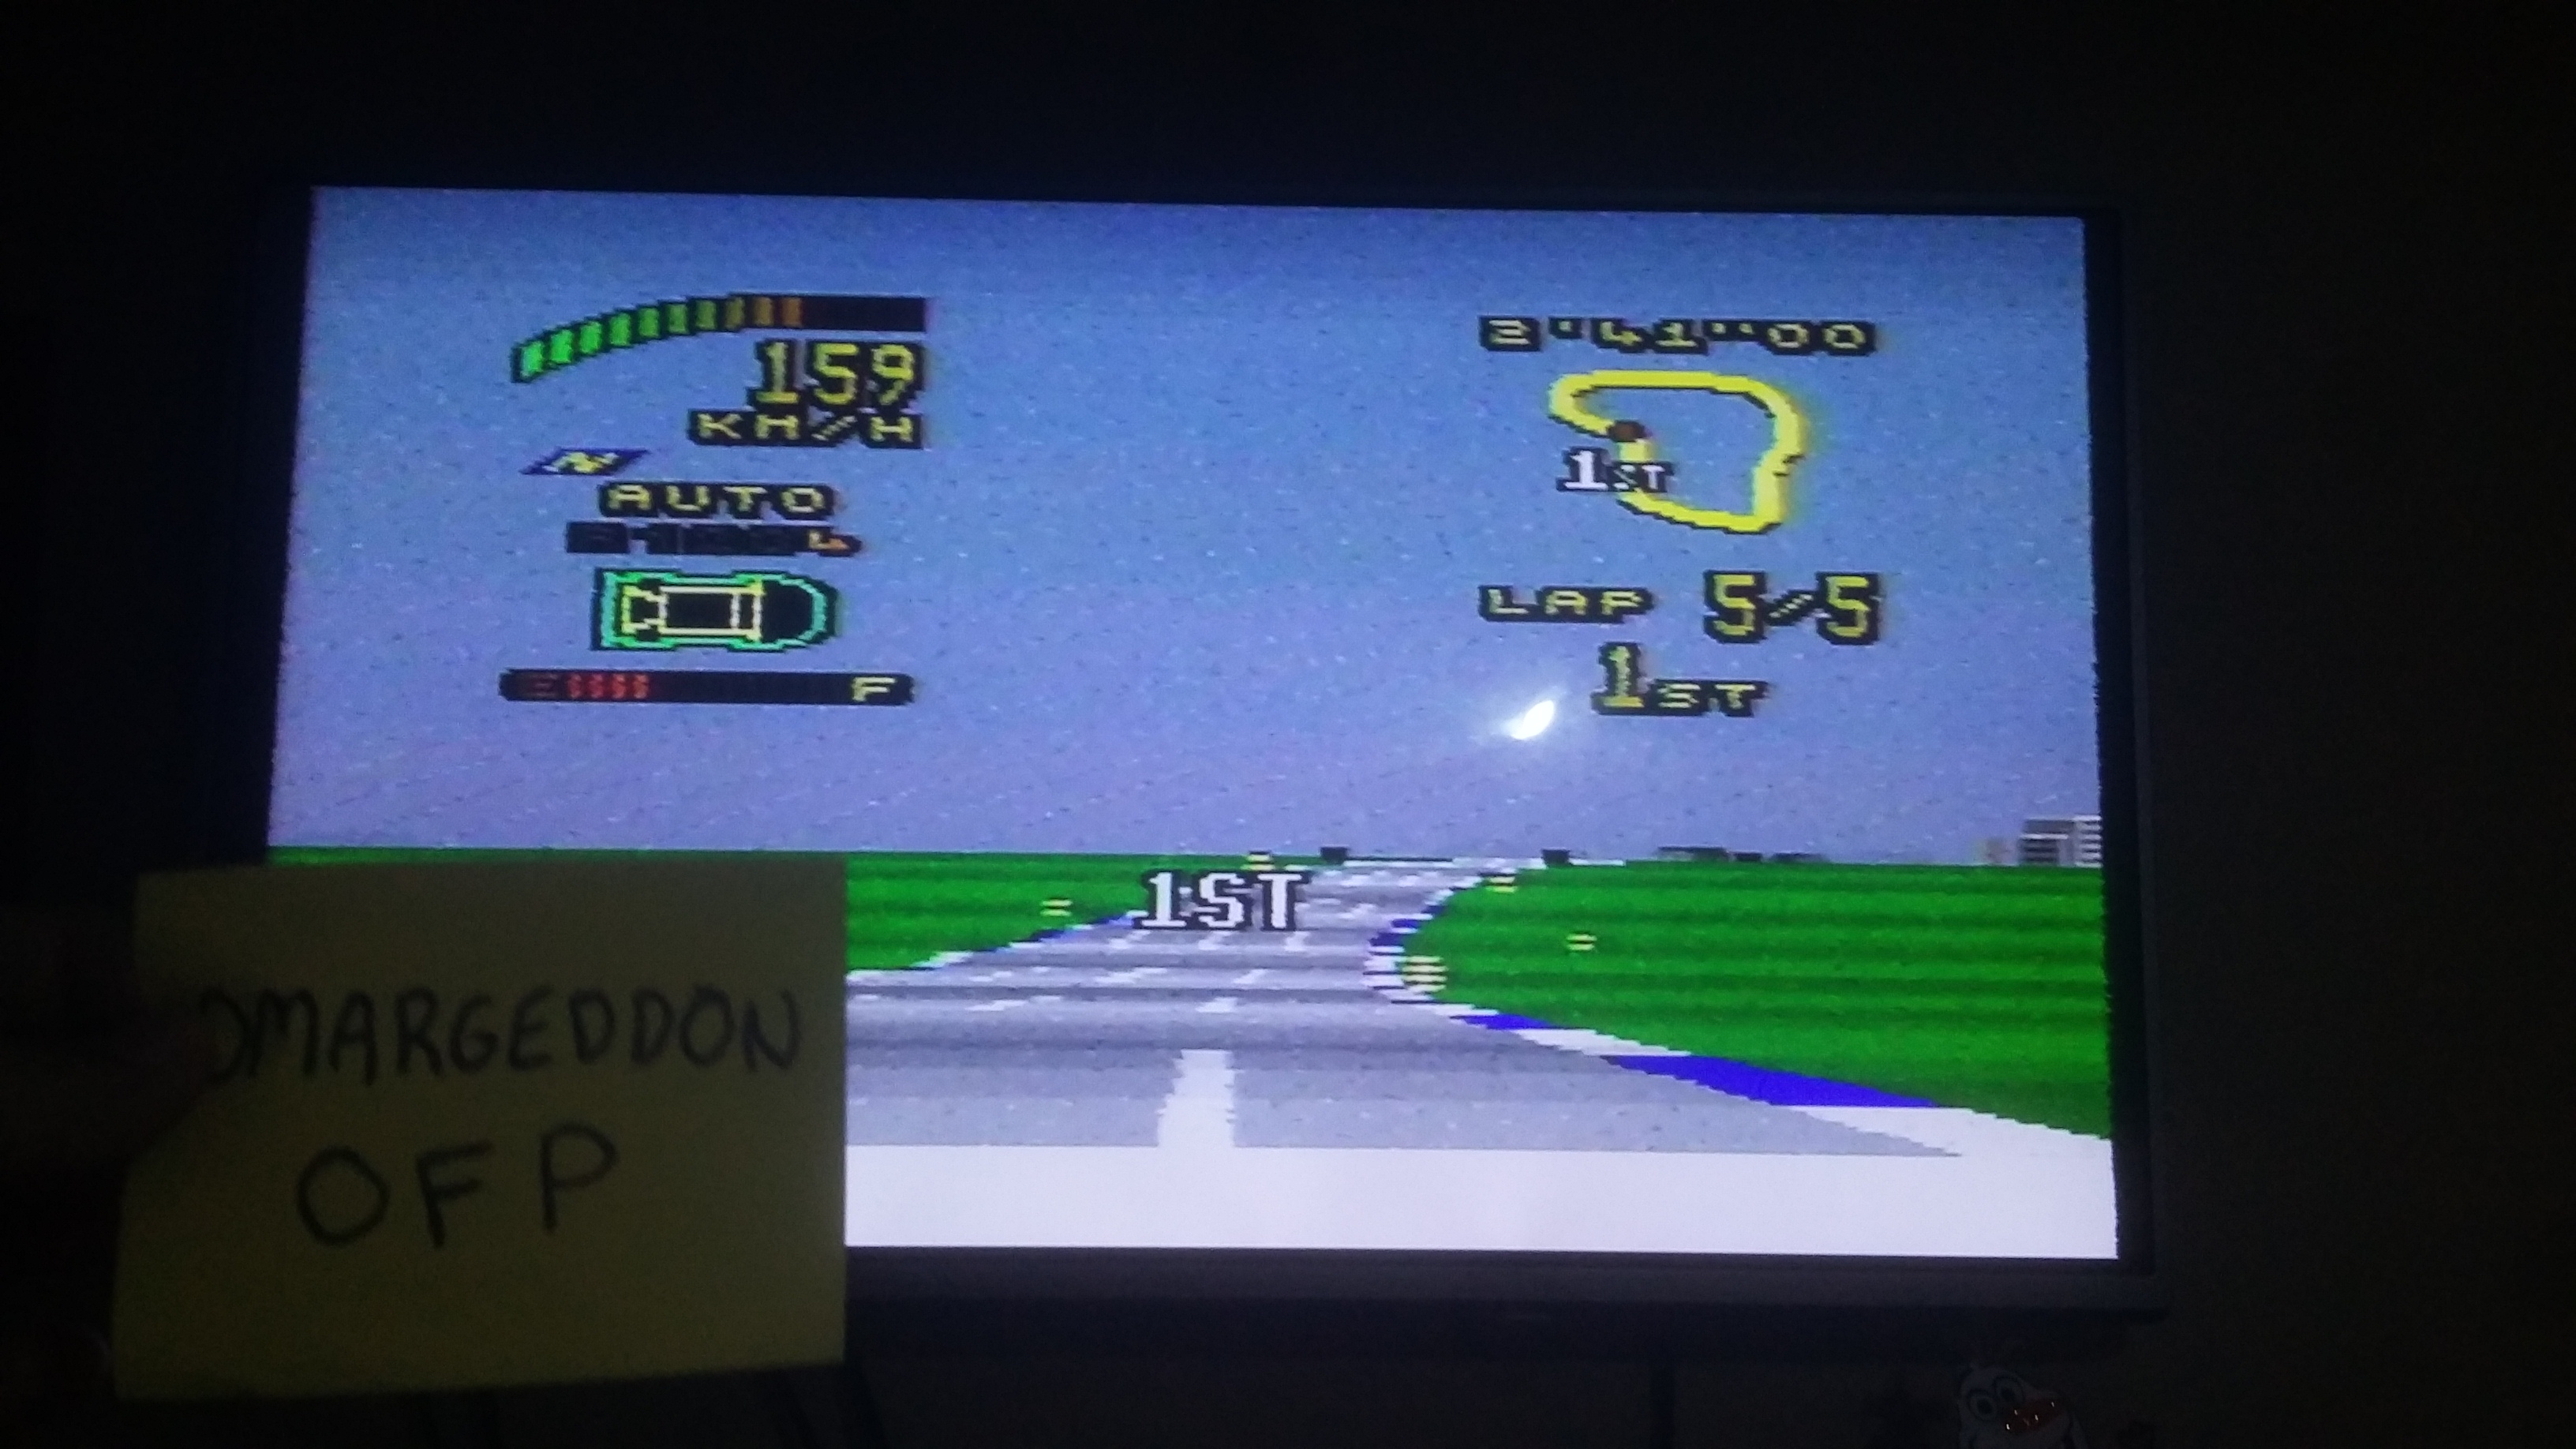 omargeddon: Top Gear 2 [Track 01/Australasia/Auckland/Amateur difficulty/Nitro allowed] (SNES/Super Famicom) 0:02:41 points on 2016-12-03 18:06:44